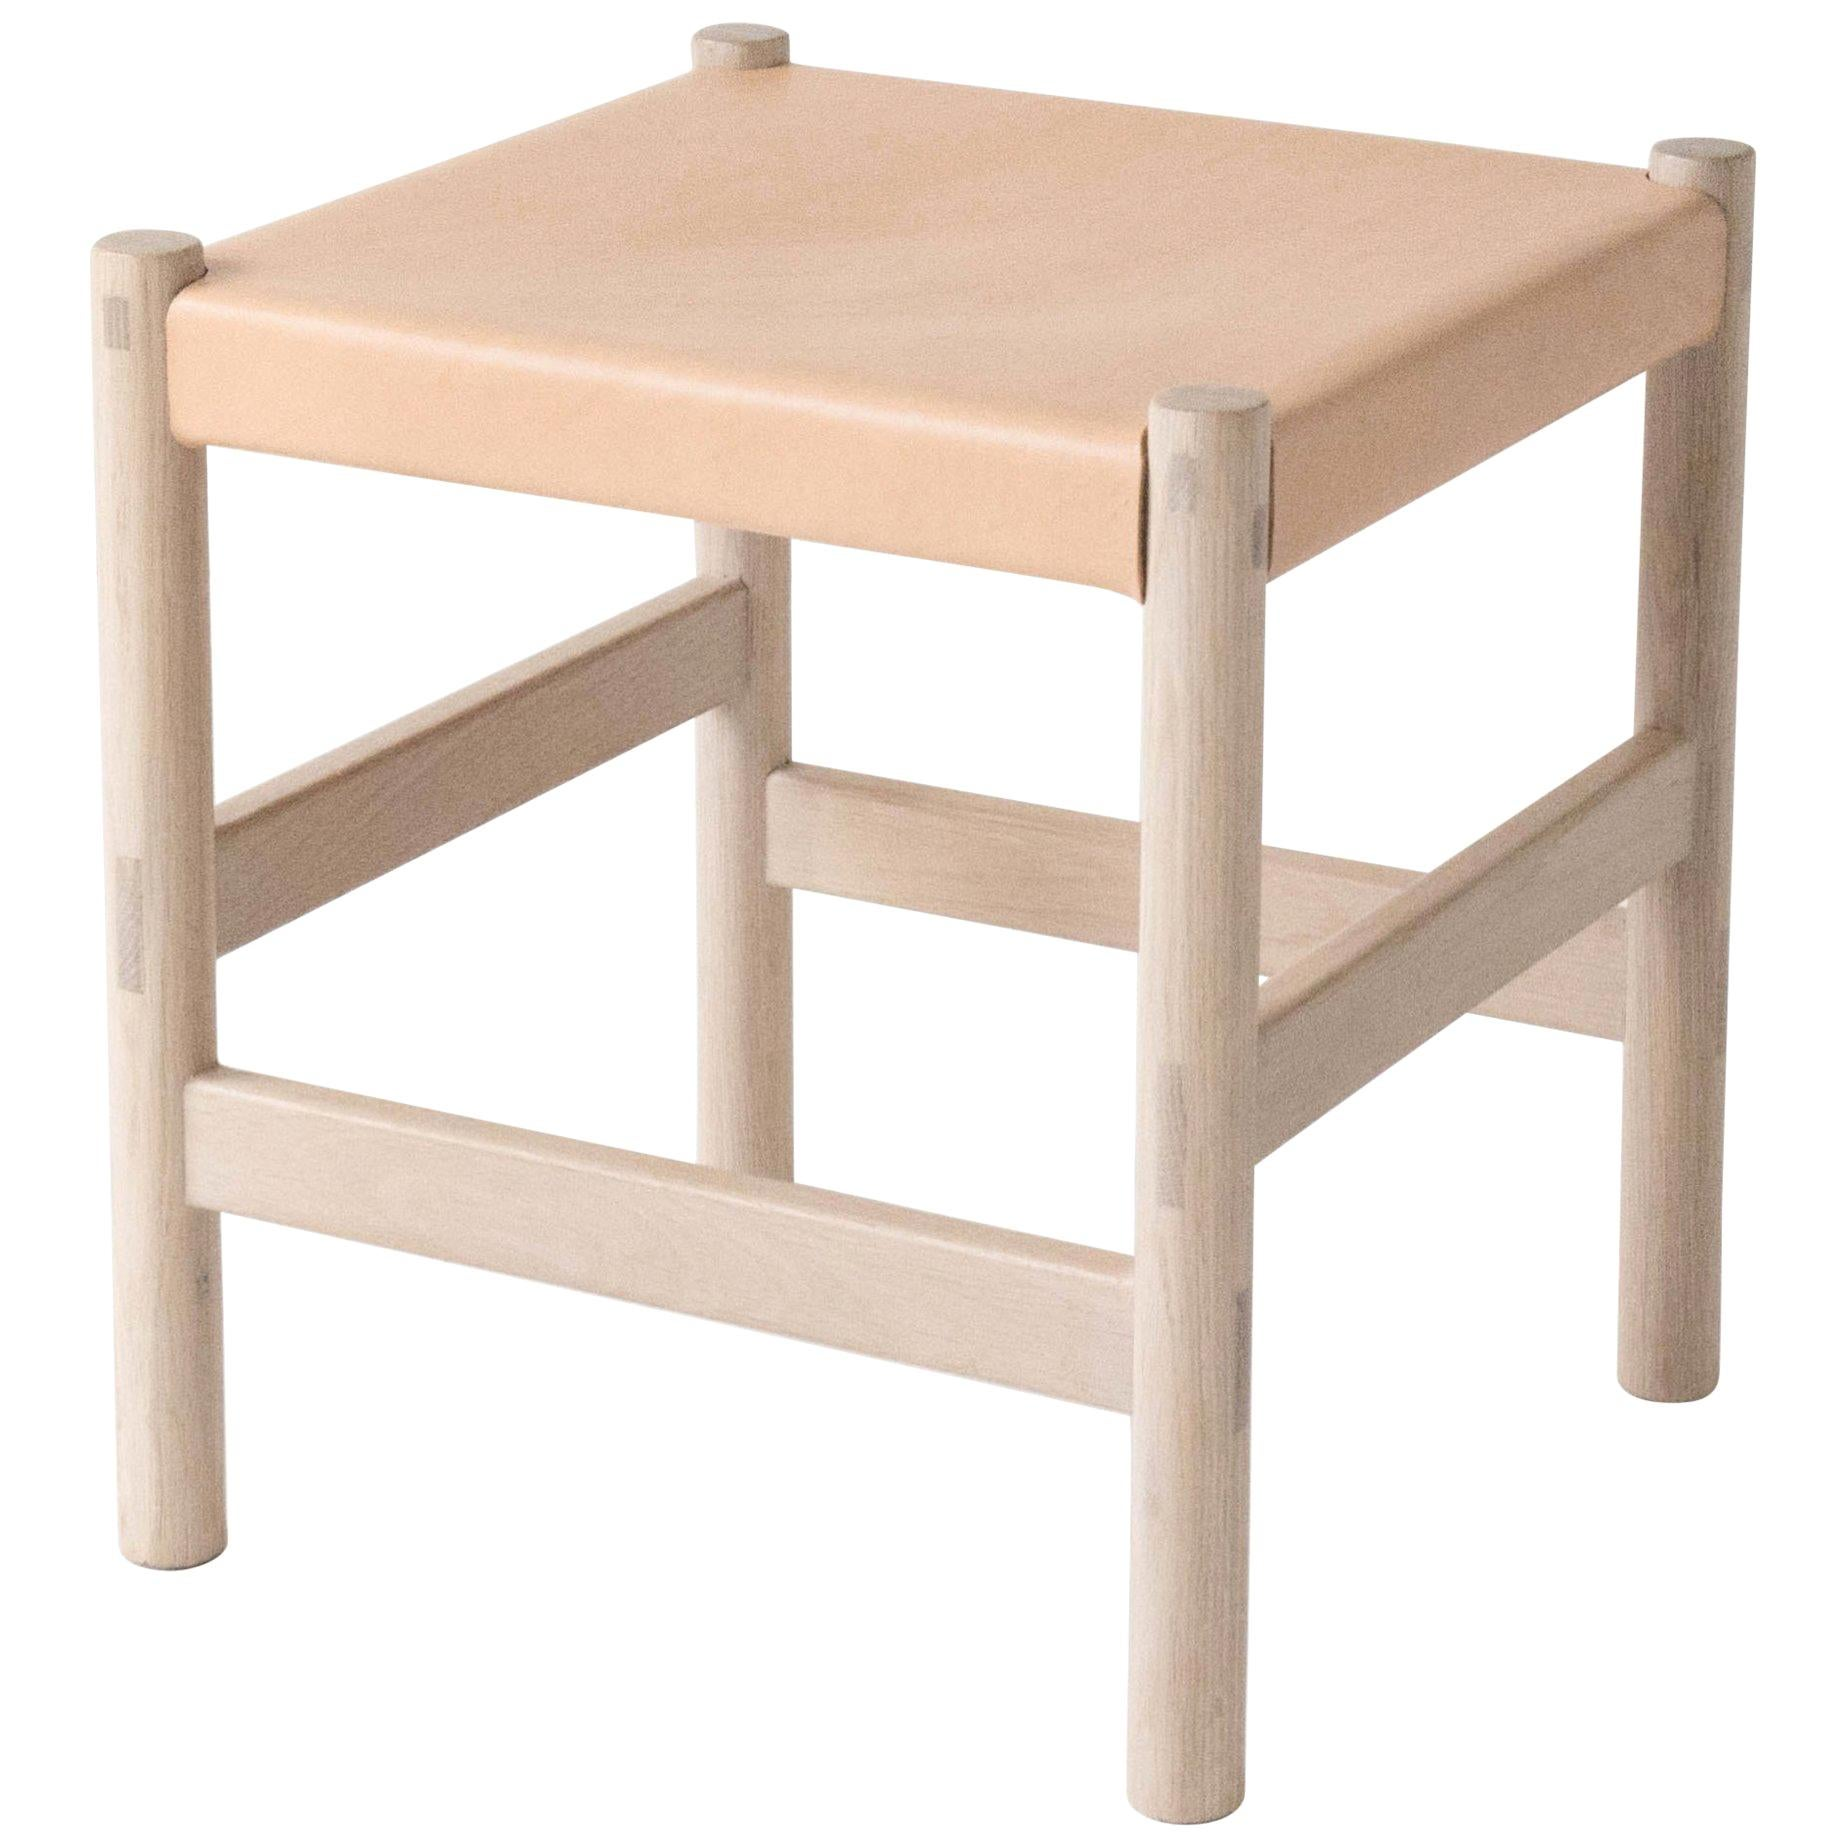 Juniper Stool by Sun at Six, Nude Minimalist Stool in Wood and Leather